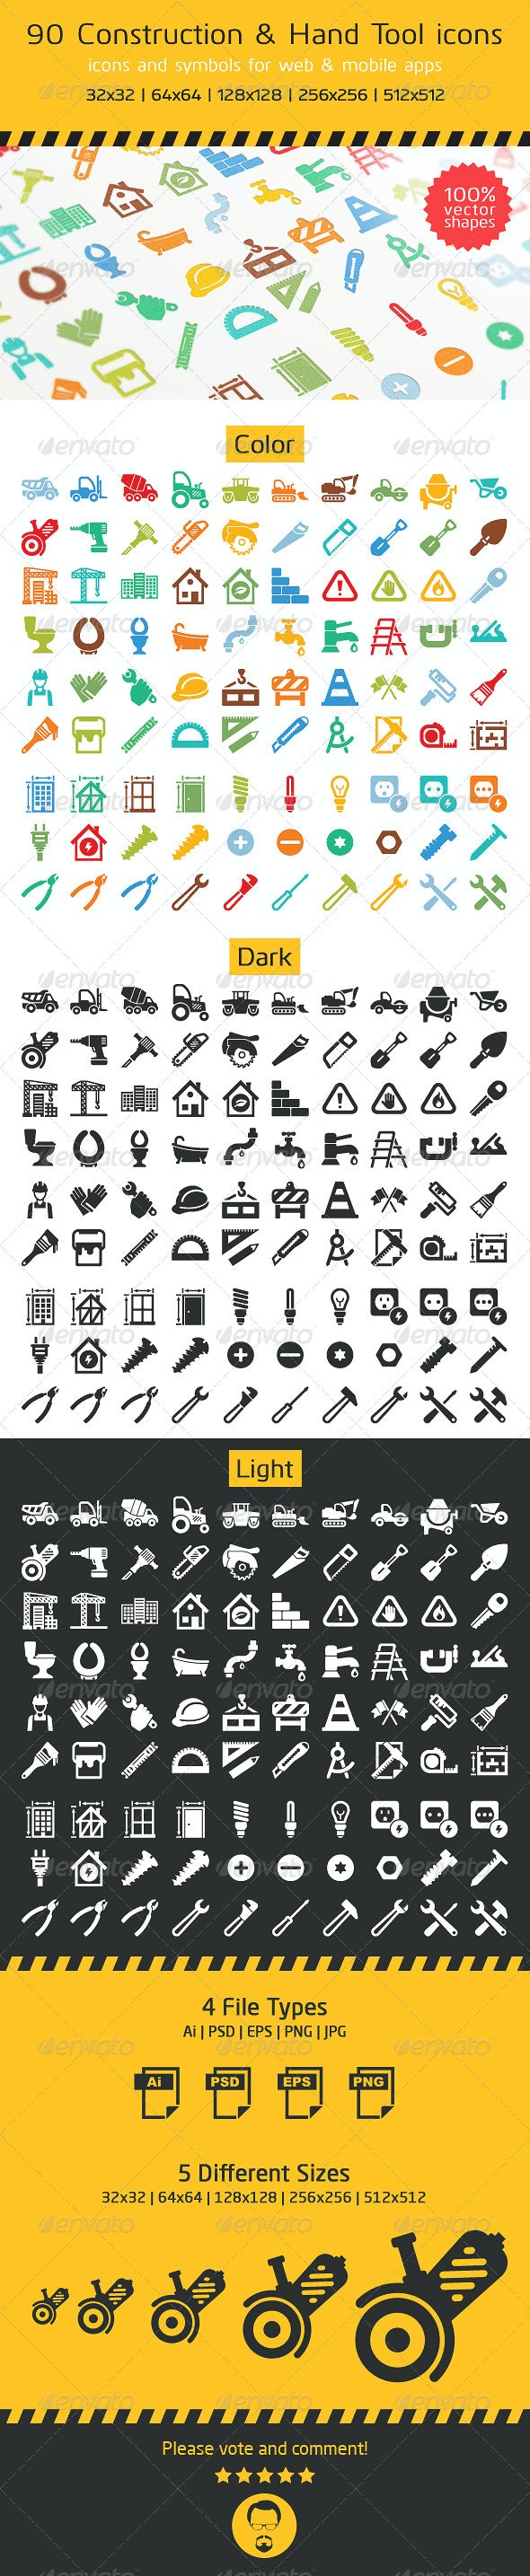 90 Construction and Hand Tool Icons - Software Icons